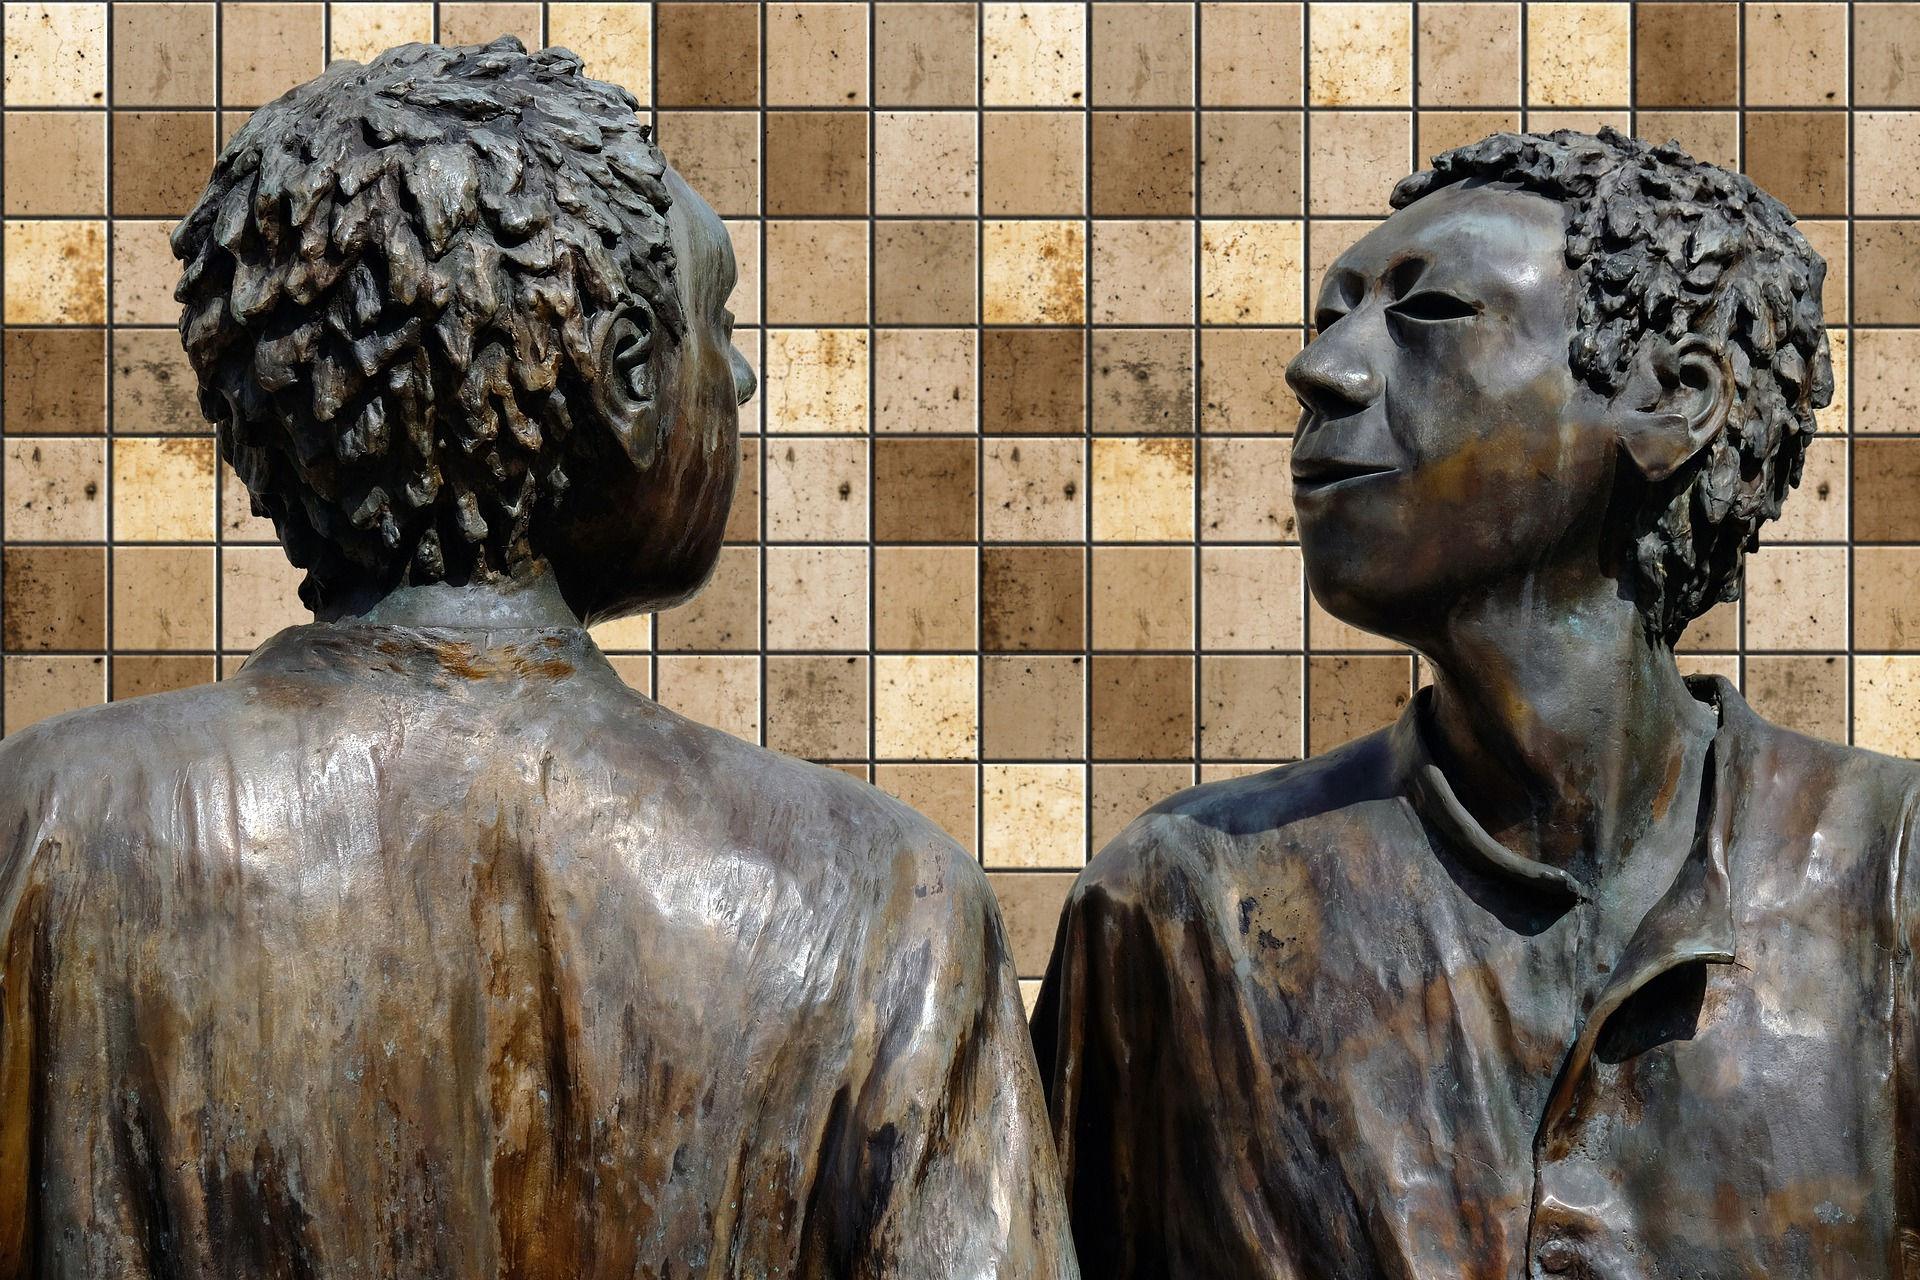 Bronze sculpture of two people looking at each other